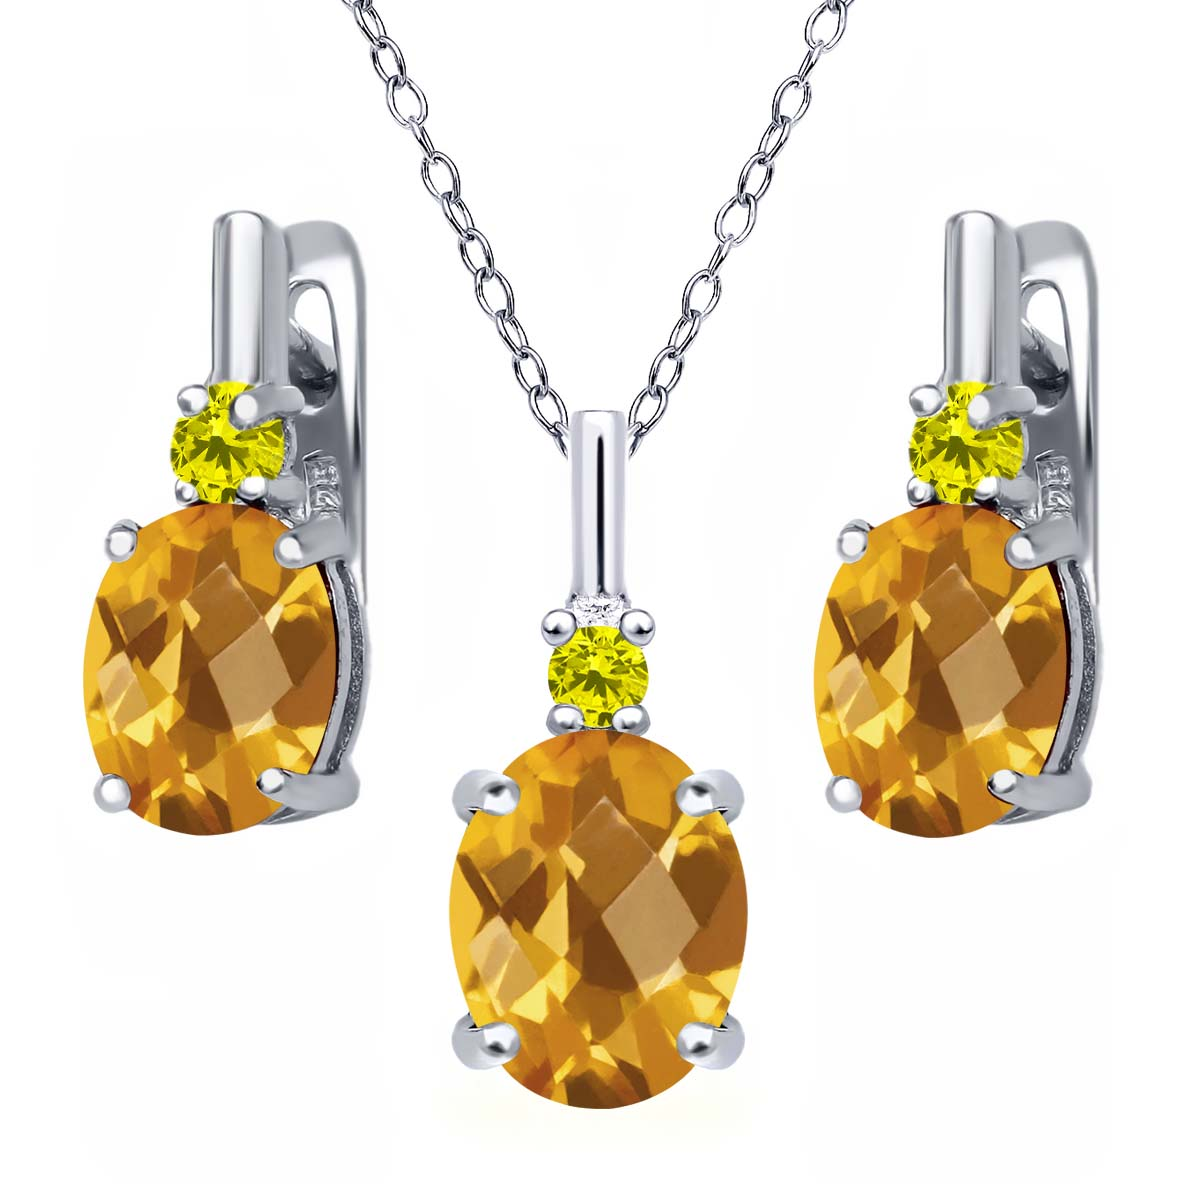 4.87 Ct Oval Checkerboard Yellow Citrine Canary Diamond 925 Silver Pendant Earrings Set by